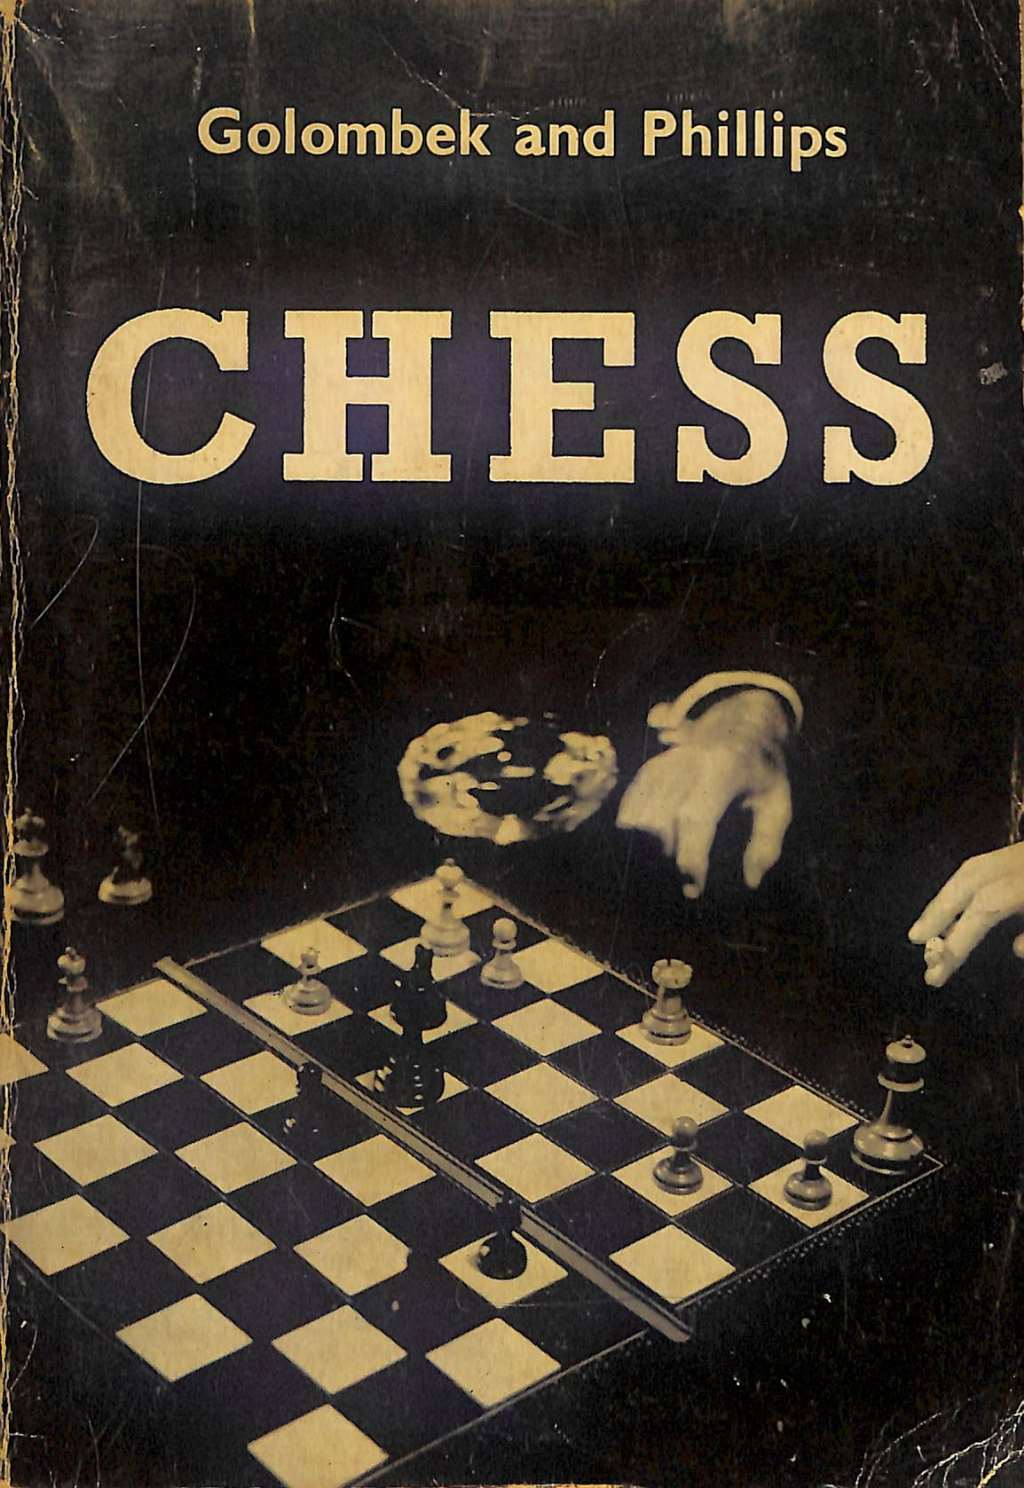 Chess, Harry Golombek and Hubert Phillips, HG & G Witherby, 1959